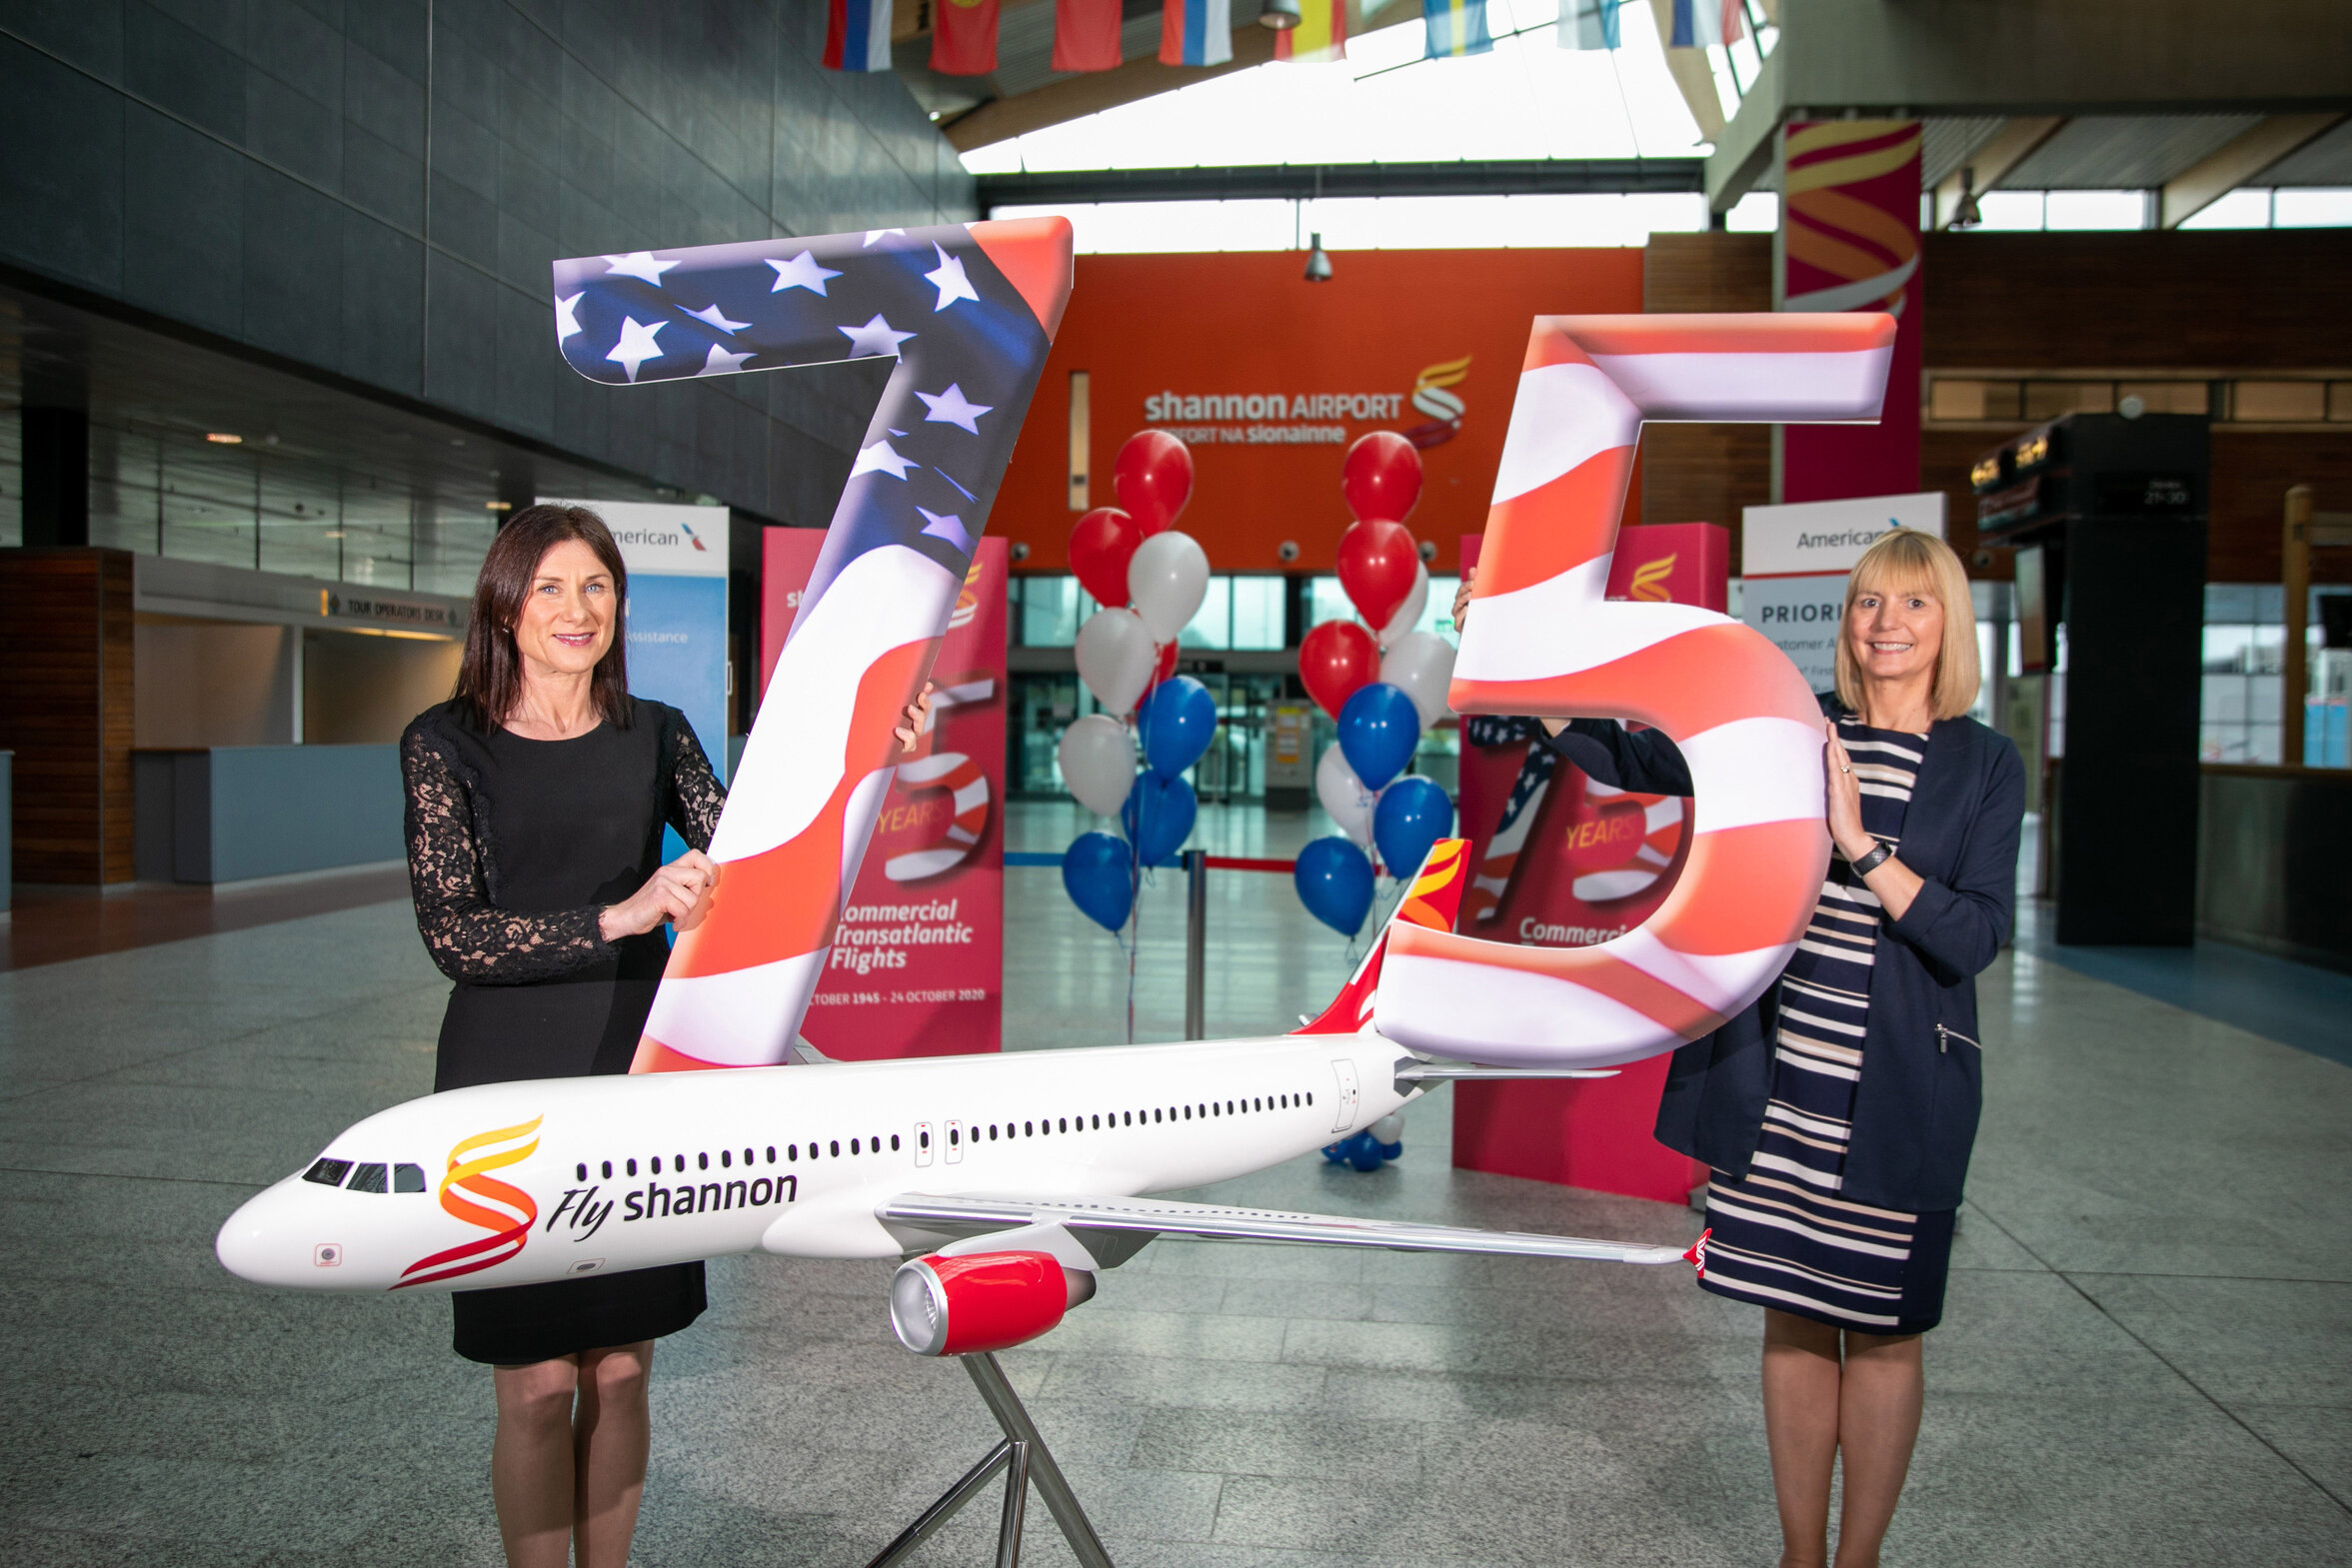 Shannon Airport 75th anniversary